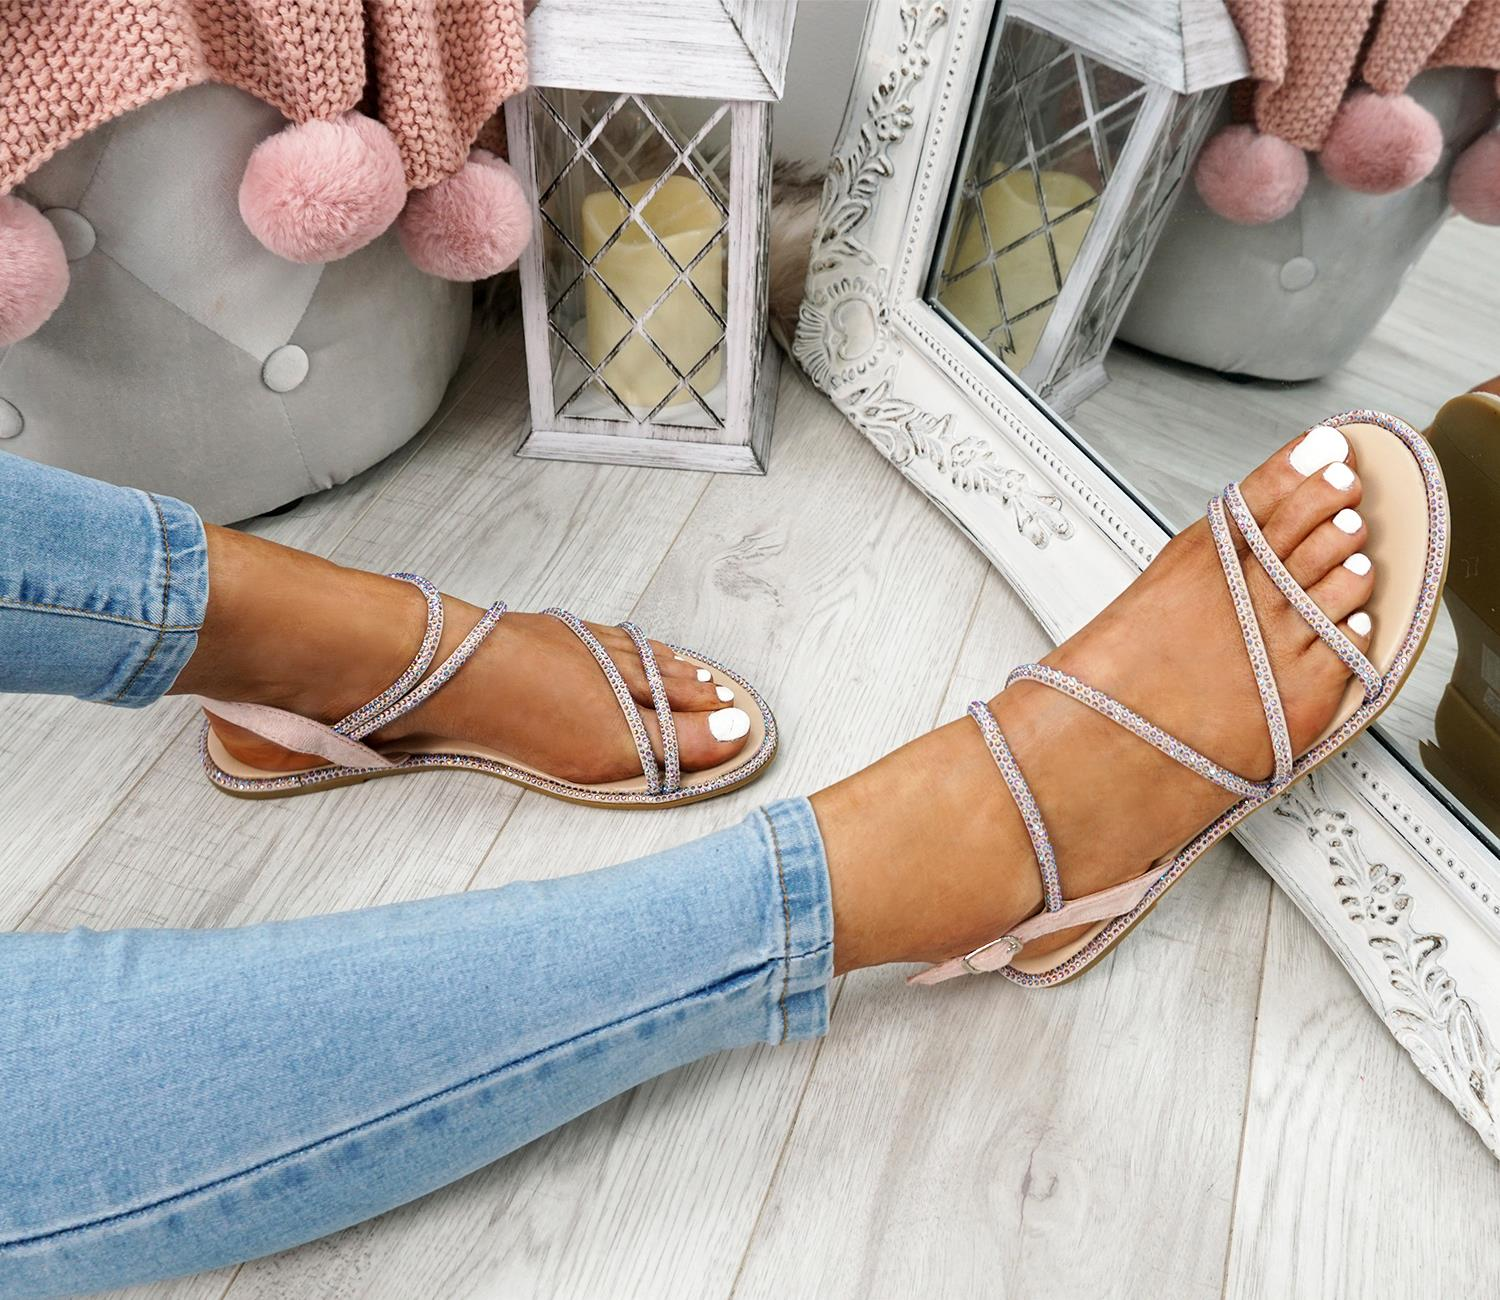 WOMENS-LADIES-STUDDED-ANKLE-STRAP-FLAT-SHOES-PARTY-CLUB-SANDALS-SHOES-SIZE-UK thumbnail 13